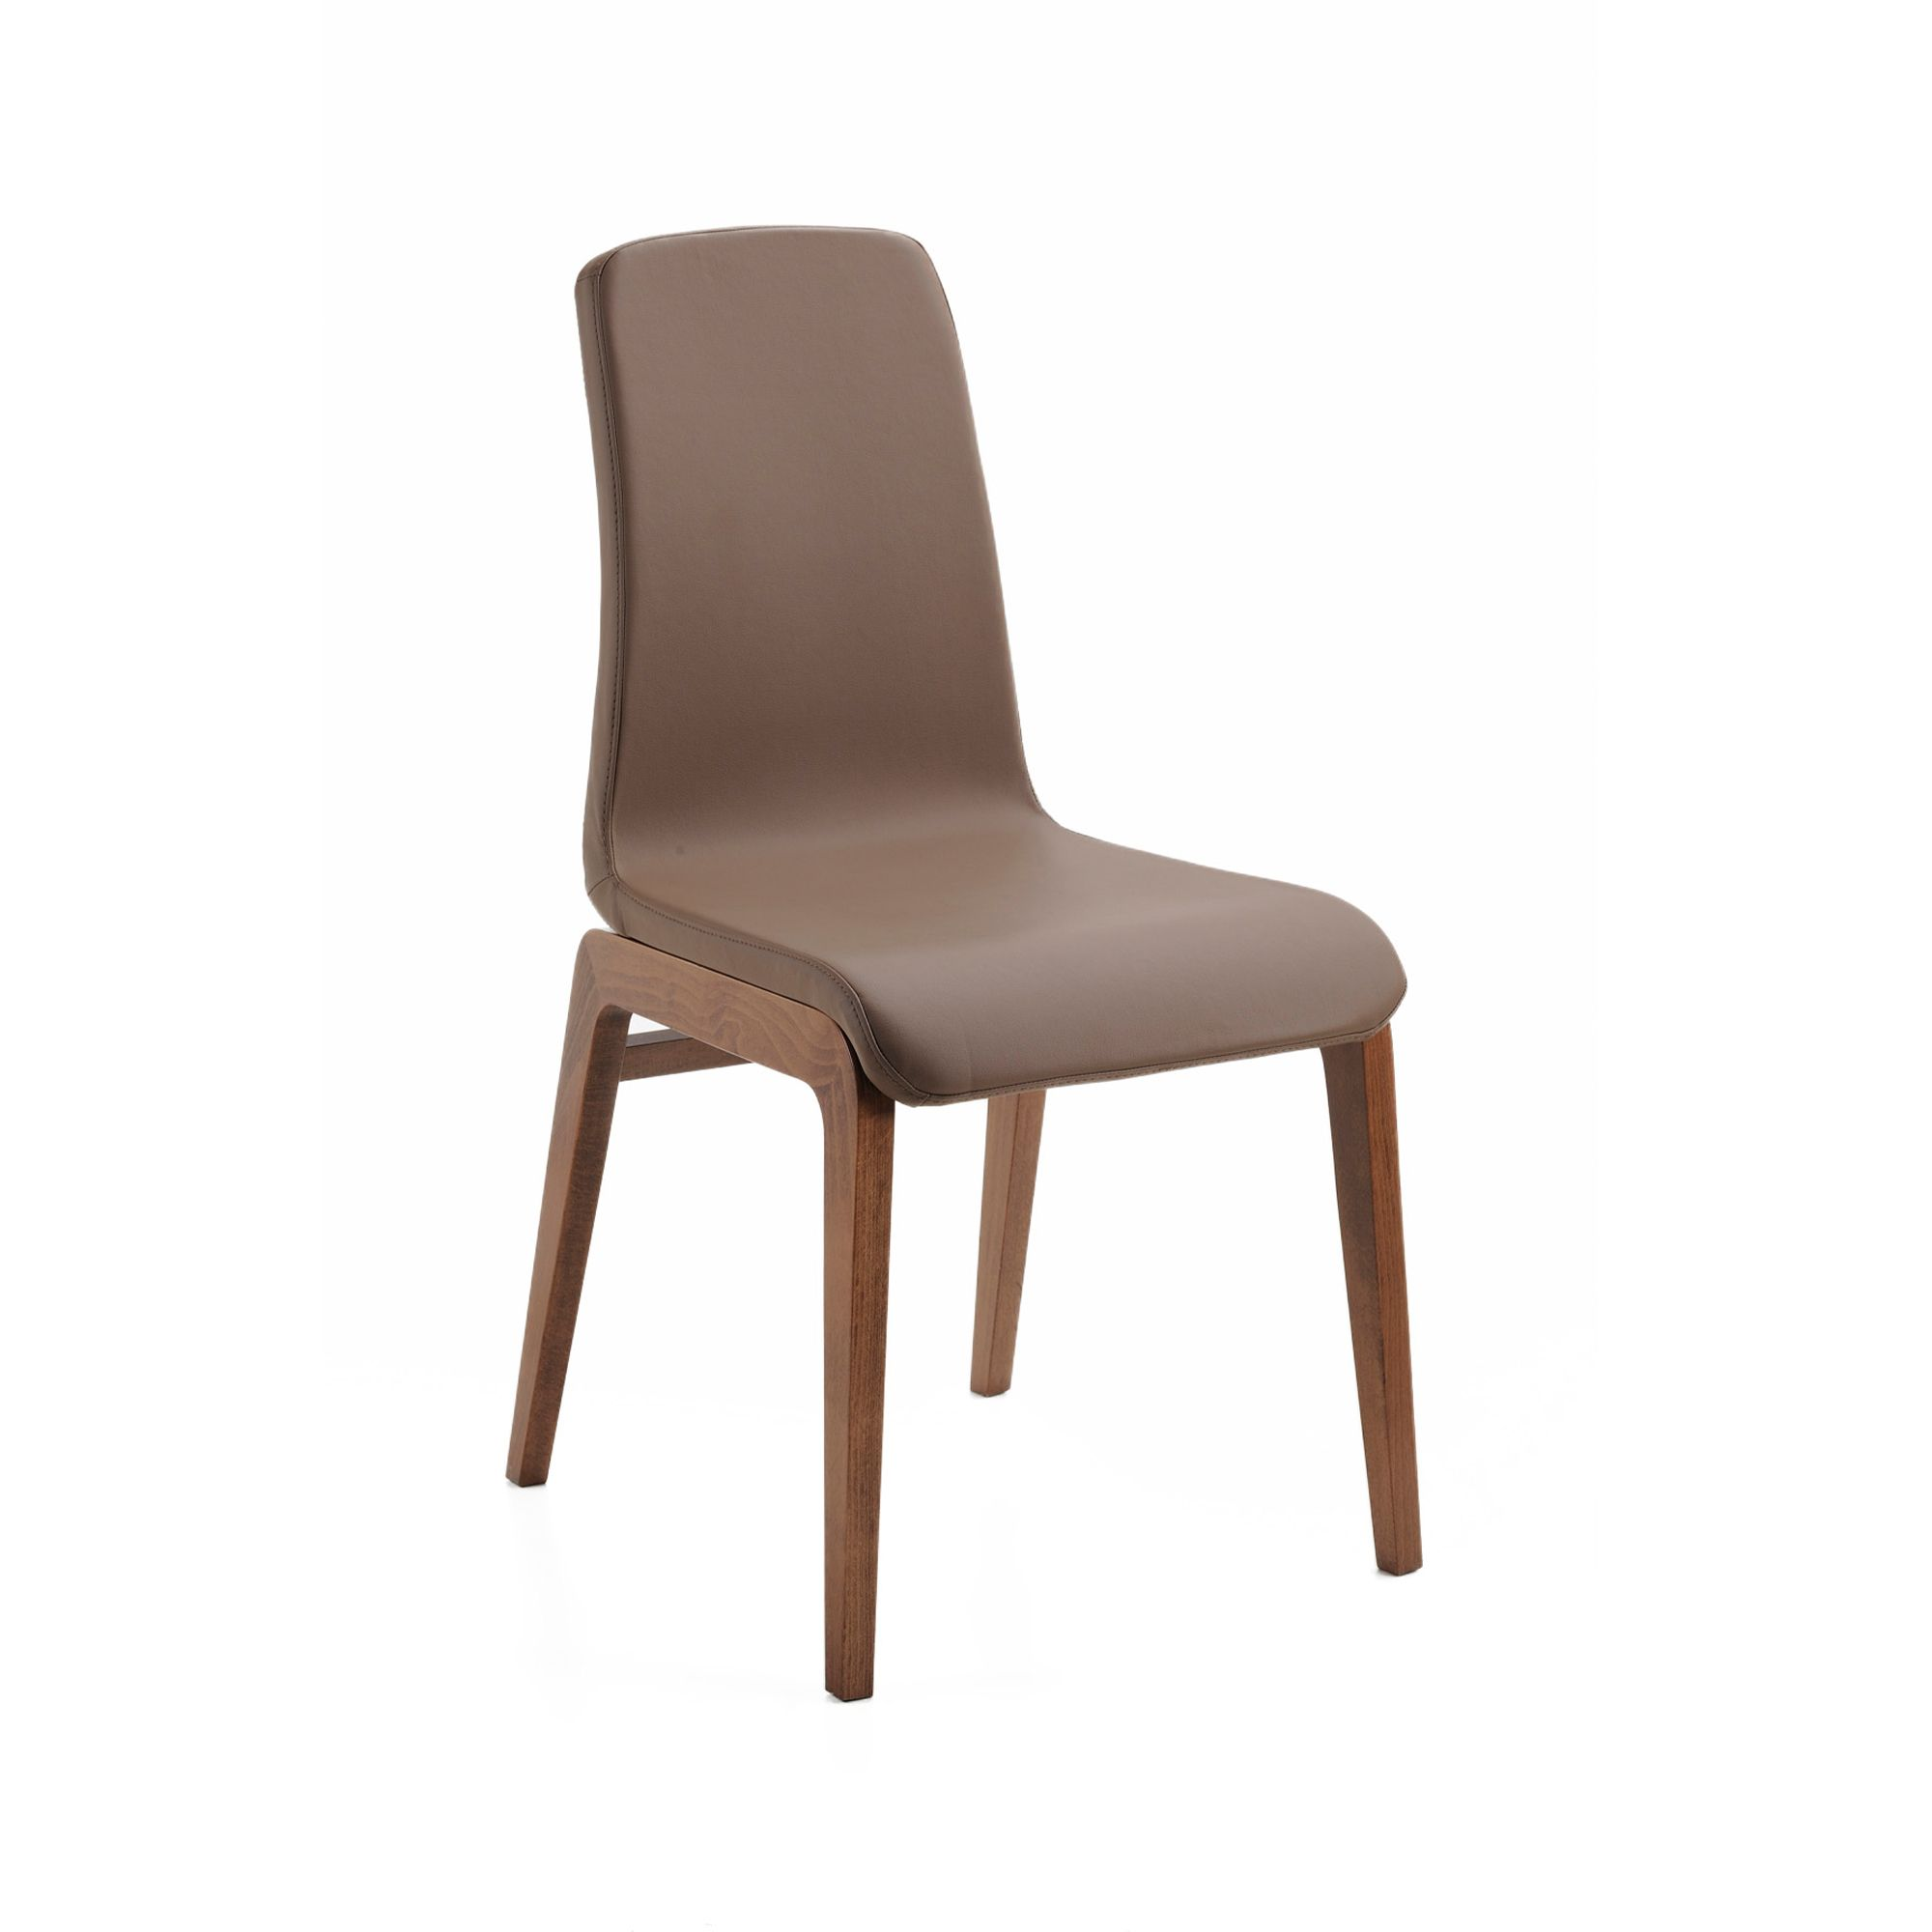 Model 856 chair in modern style